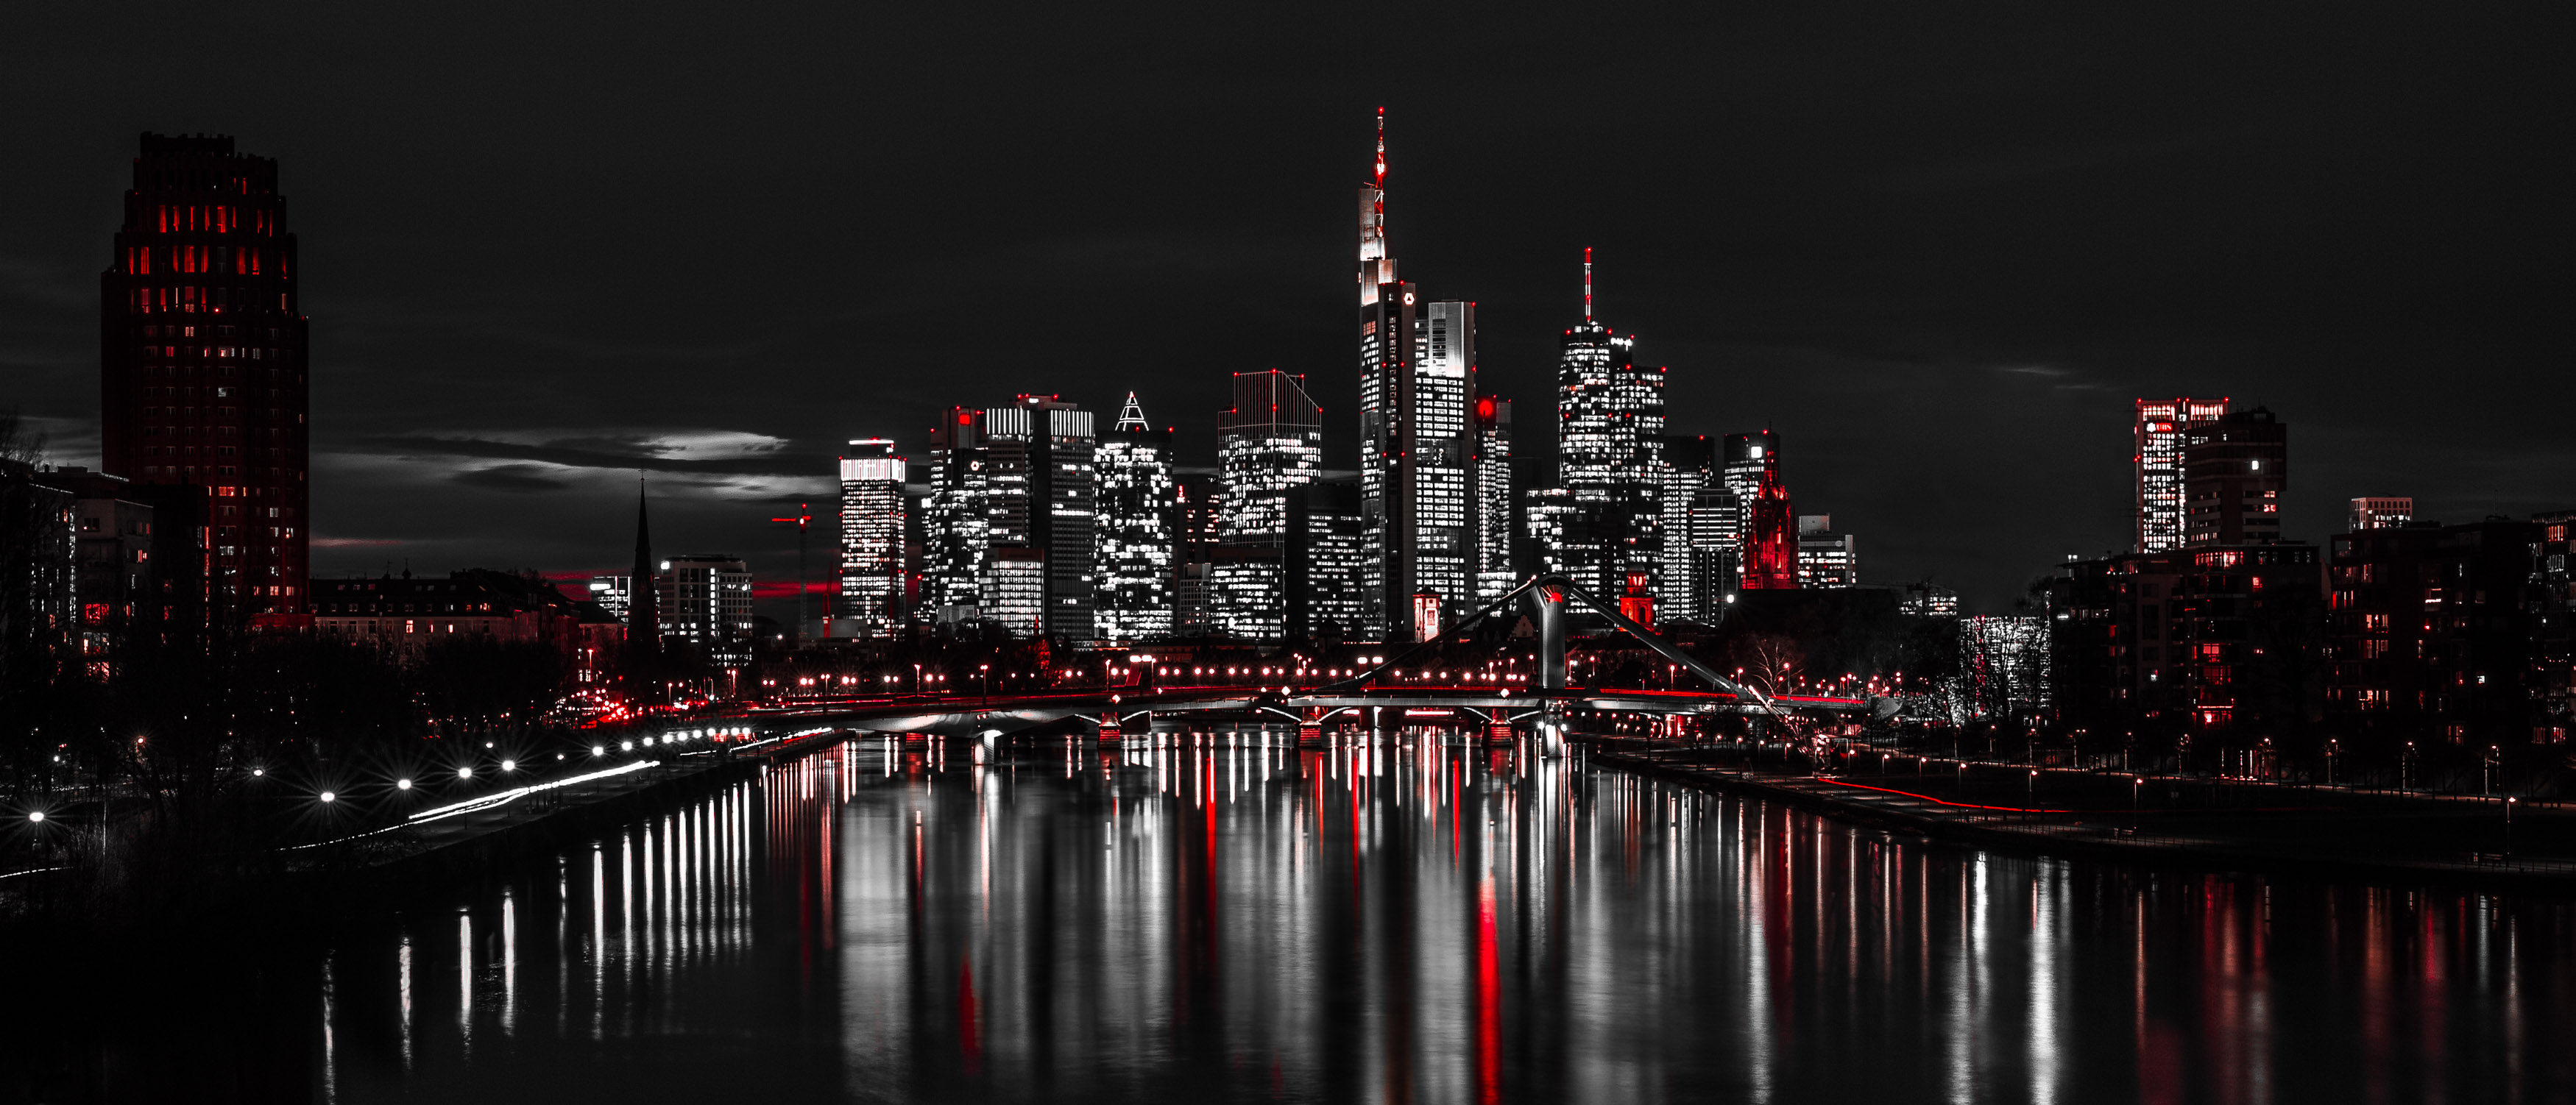 Skyline of Frankfurt - Germany - City Photography